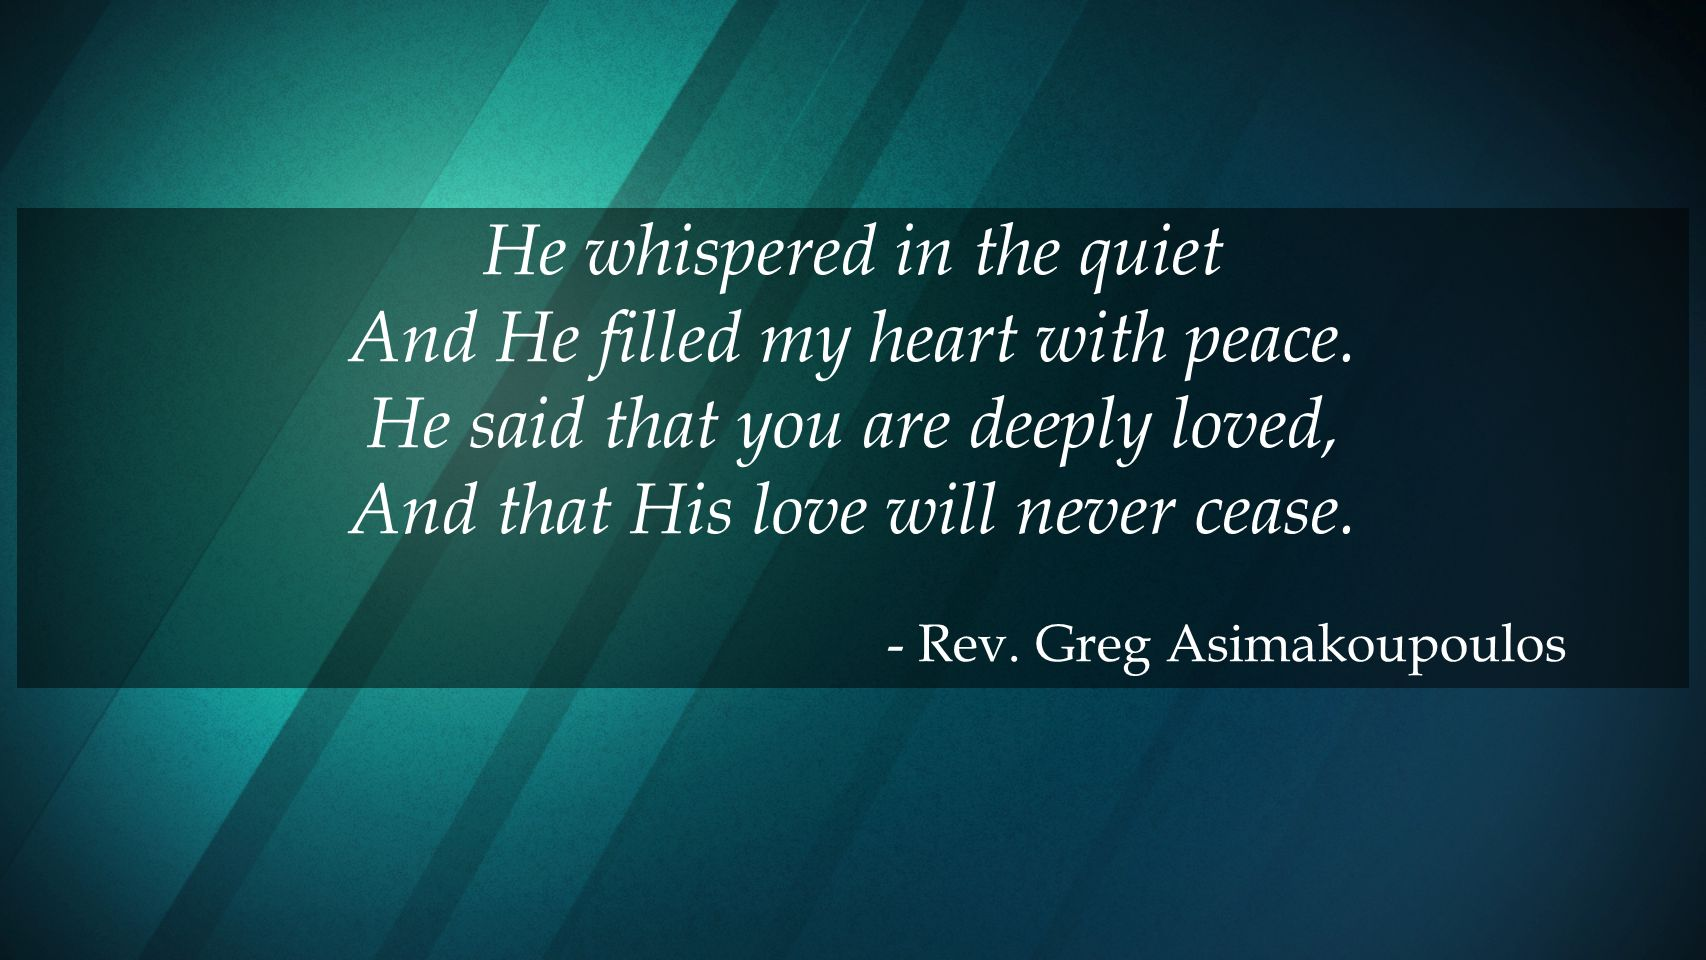 He whispered in the quiet And He filled my heart with peace.